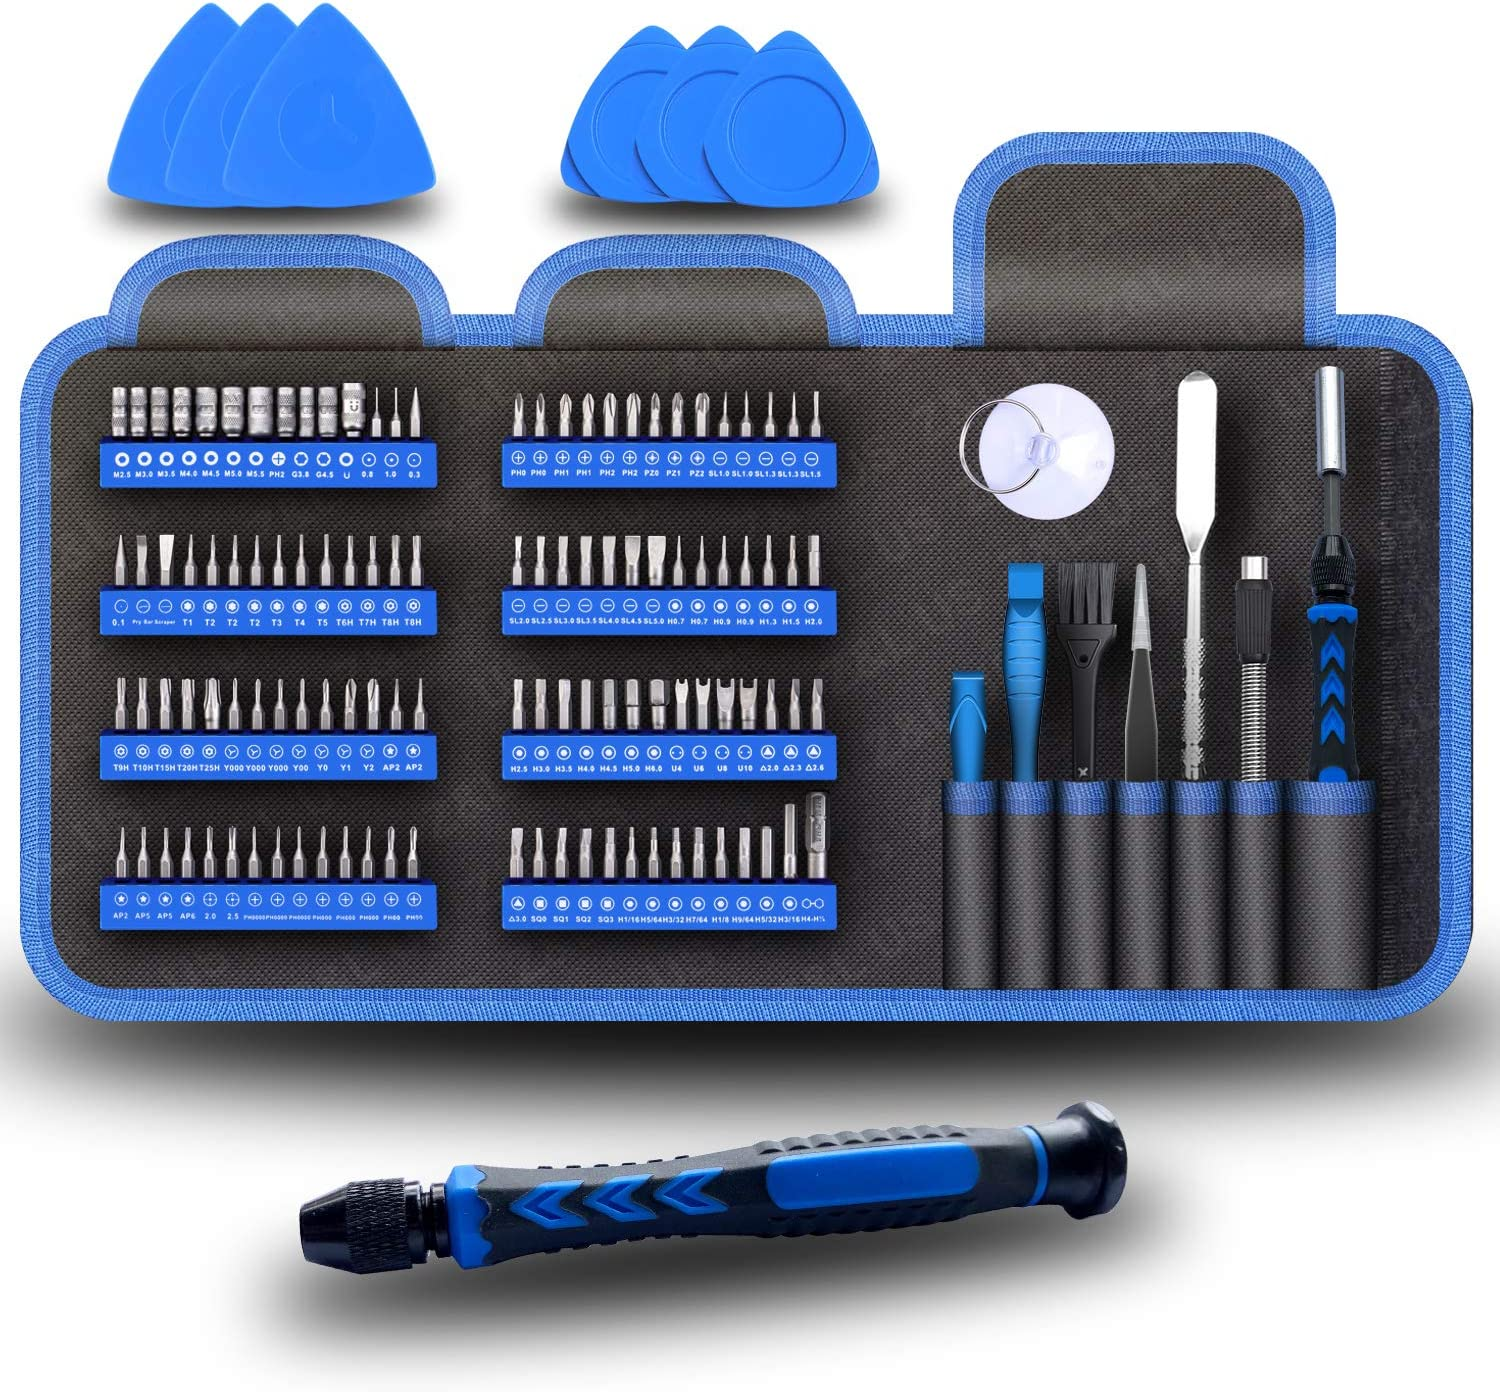 LB1 High Performance Professional 54 Piece Tool Screwdriver Bit Set Repair Kit Hand Tool Kit for Google 12.85 Chromebook Pixel 4GB Memory 32GB Solid State Drive CB001